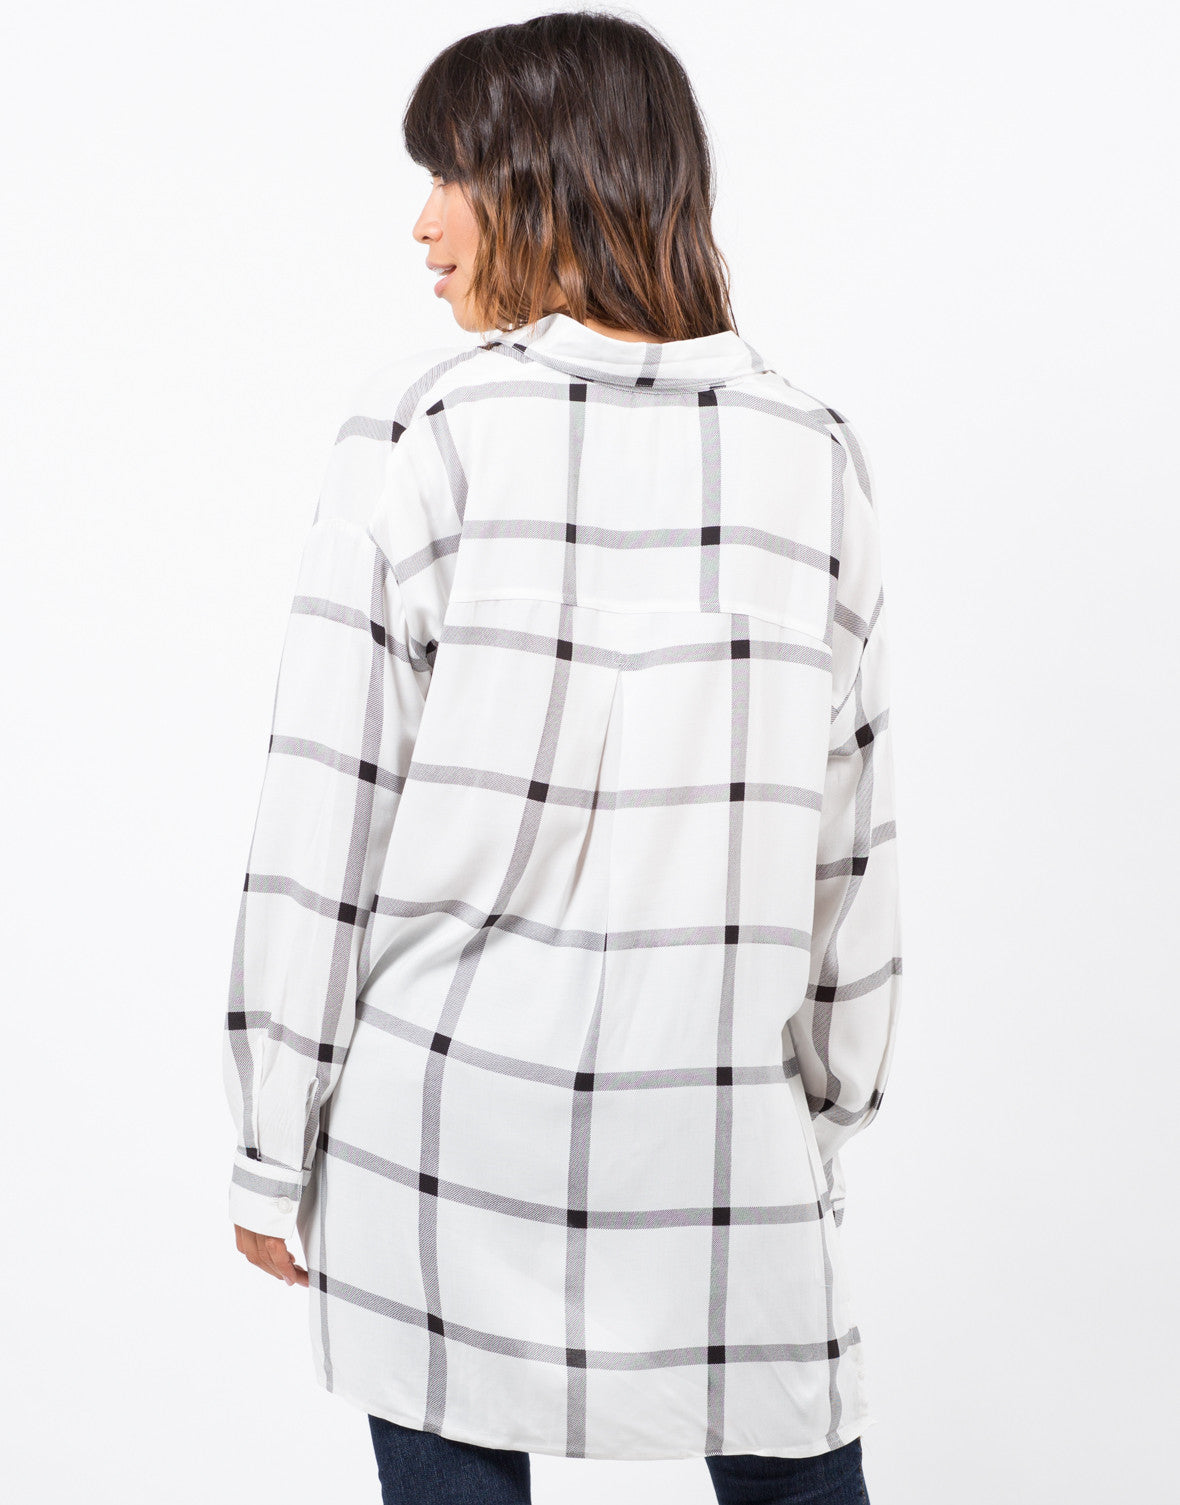 Back View of Off the Grid Woven Shirt